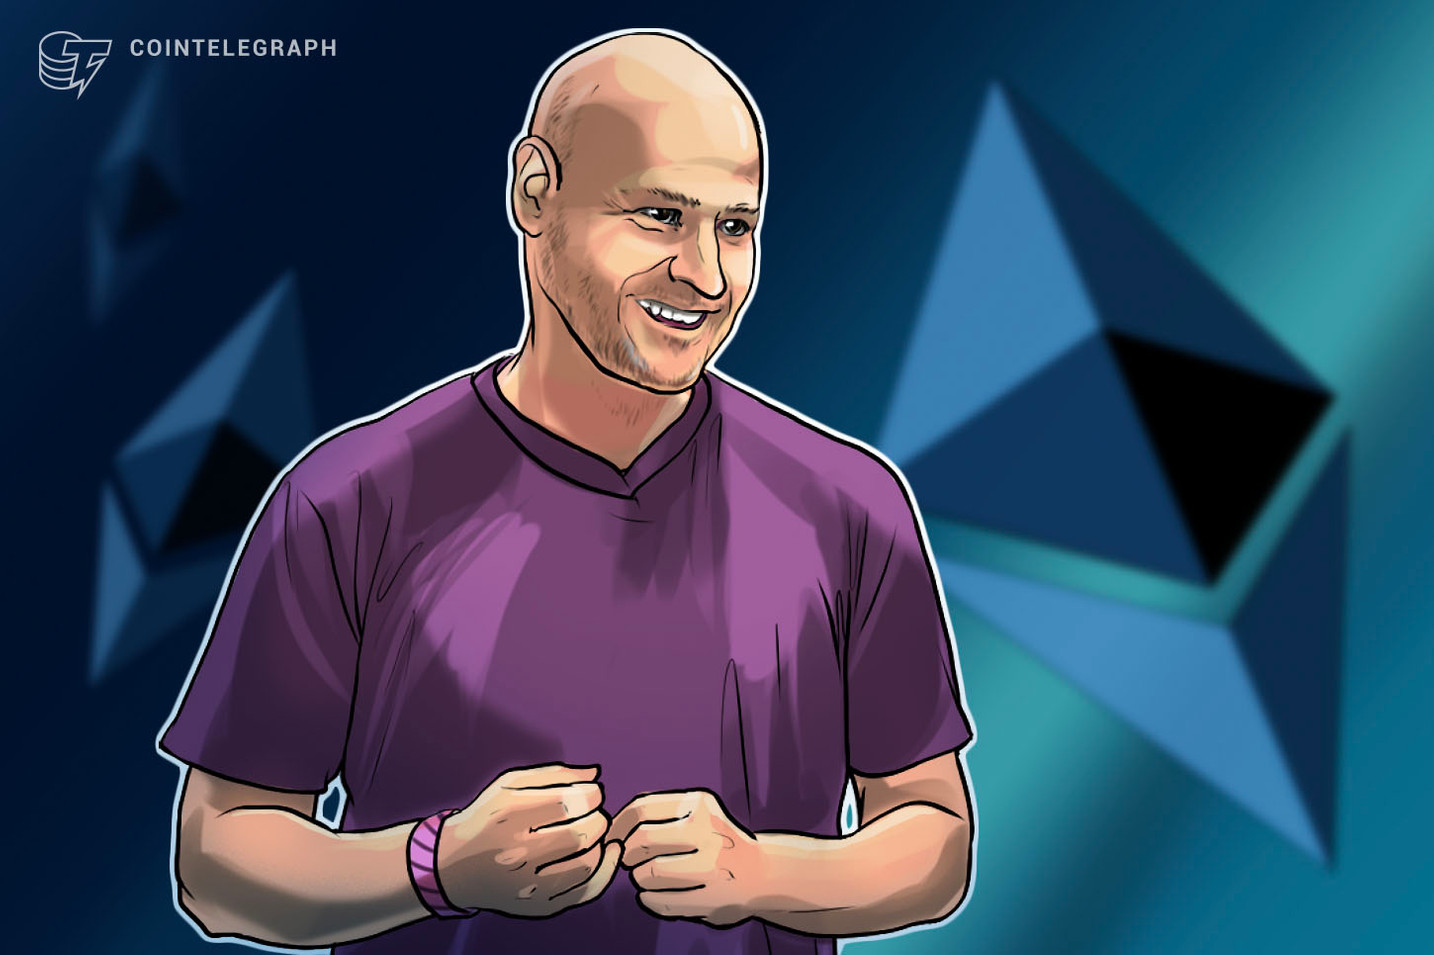 Ethereum's Joe Lubin: Blockchain Will 'Take a Little Longer' to Develop Than the Web